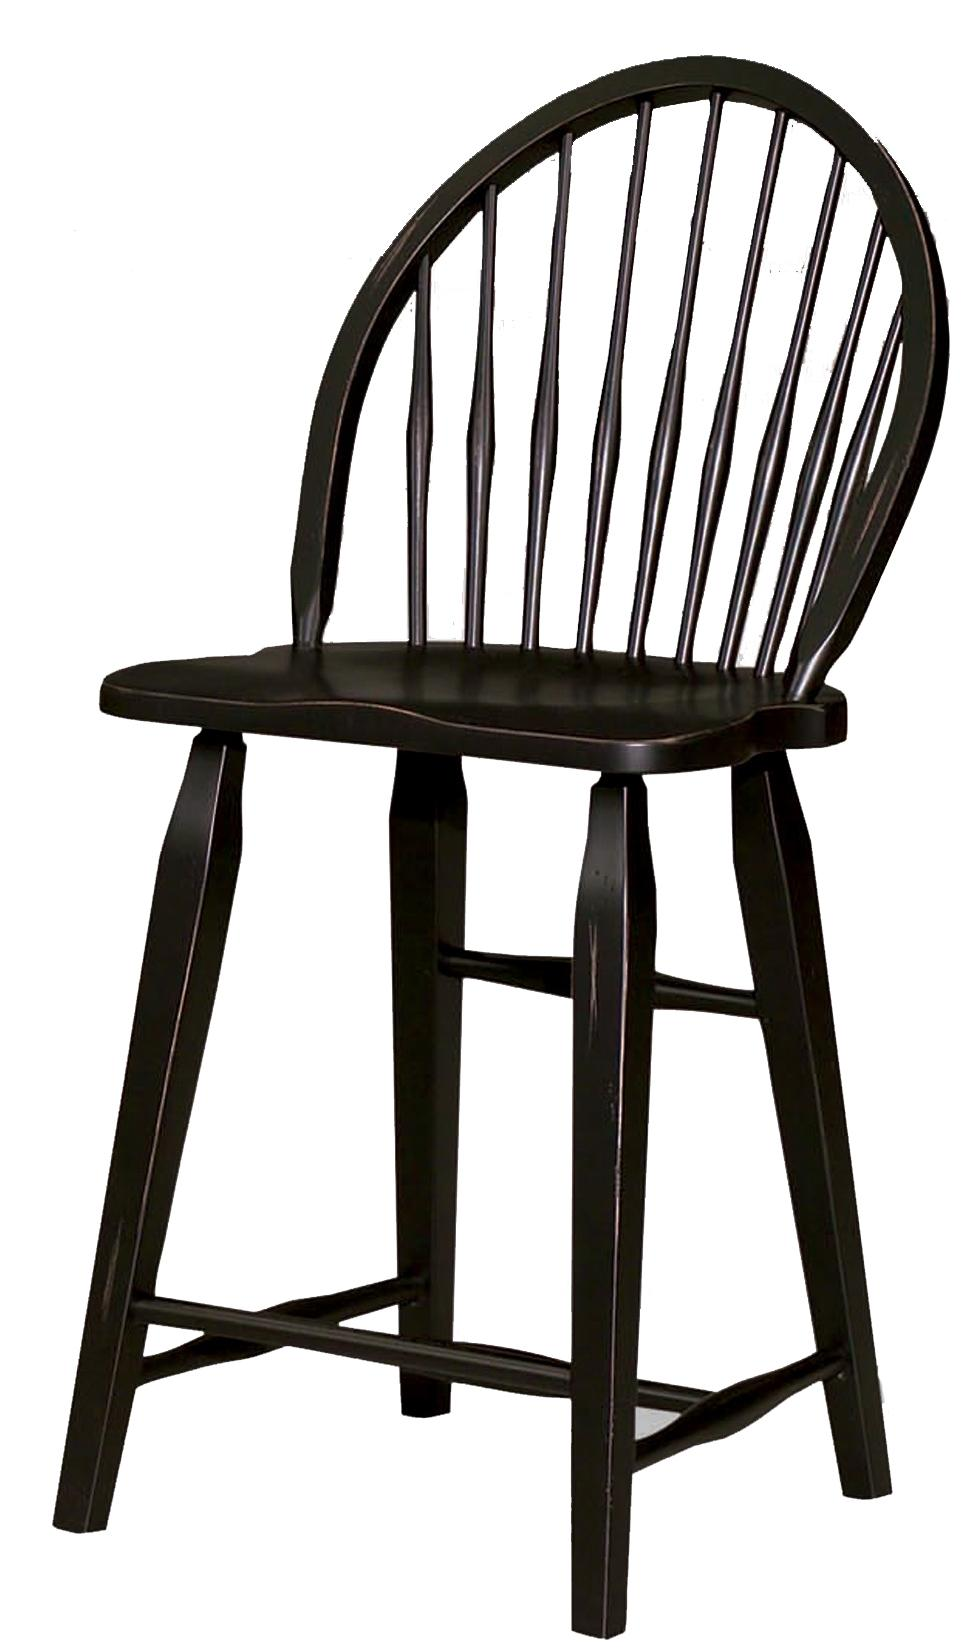 Broyhill Furniture Attic Heirlooms Windsor Counter Stool - Item Number: 5397-97B